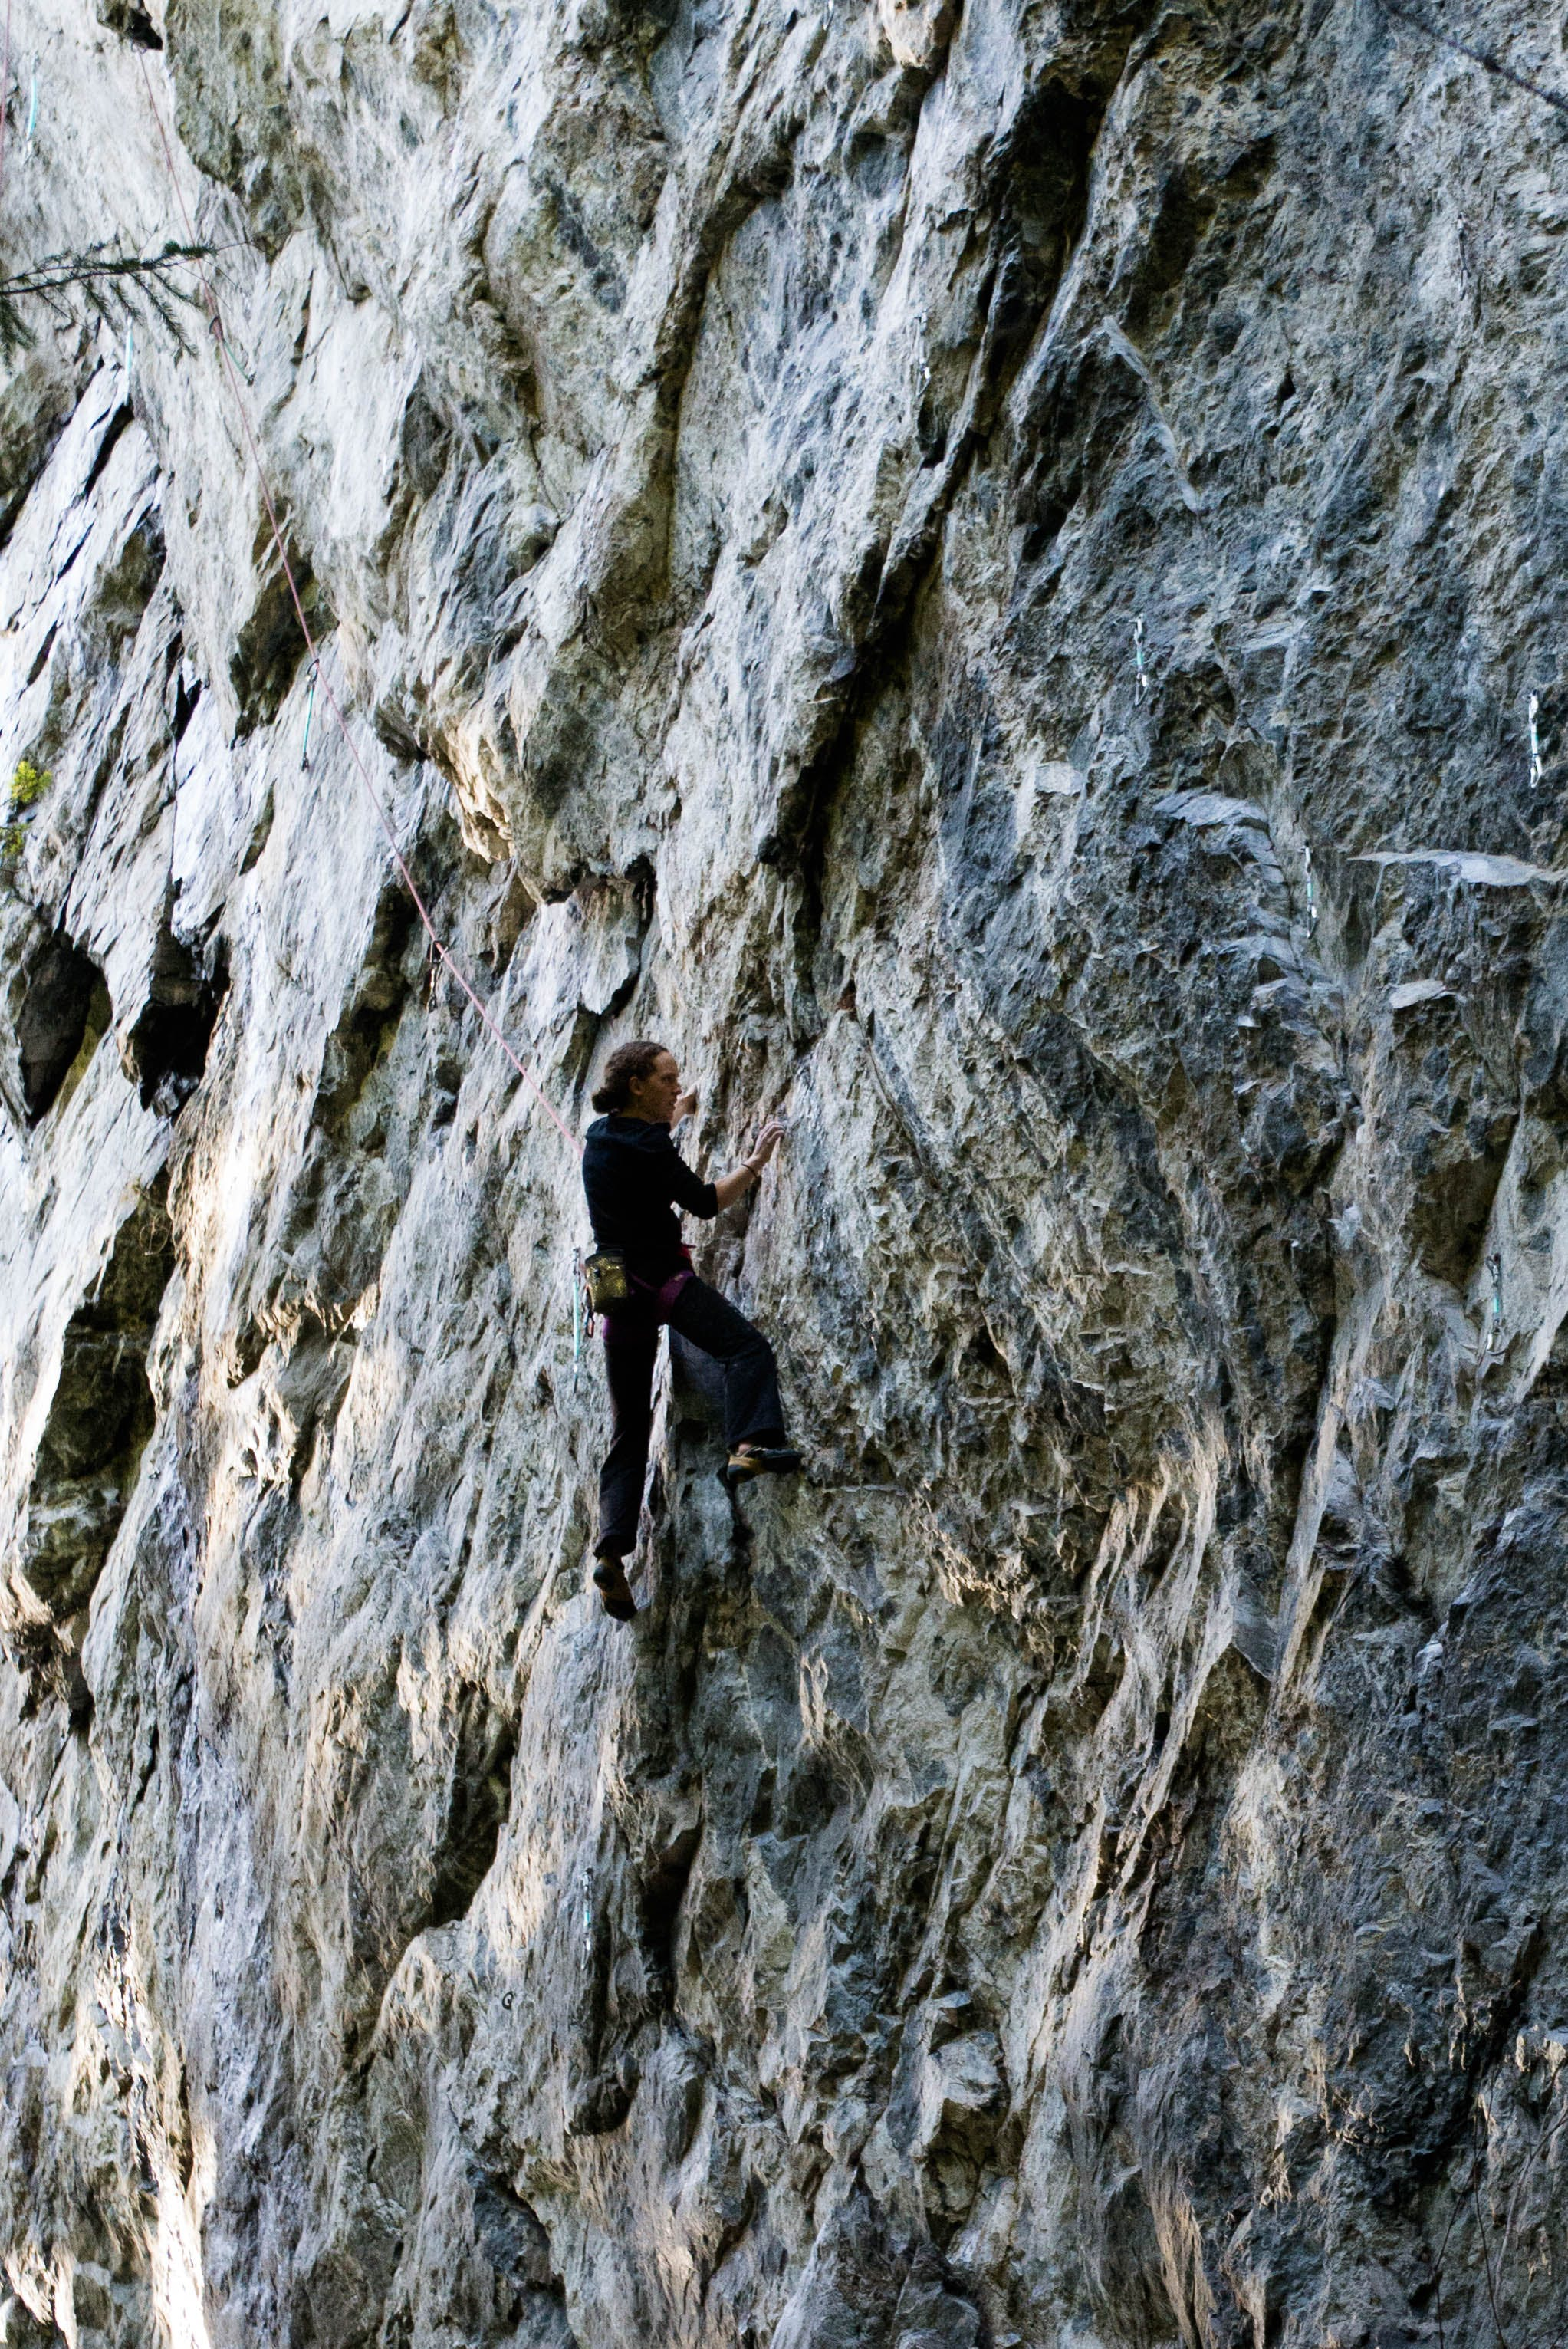 Person Climbing on Rock Mountain